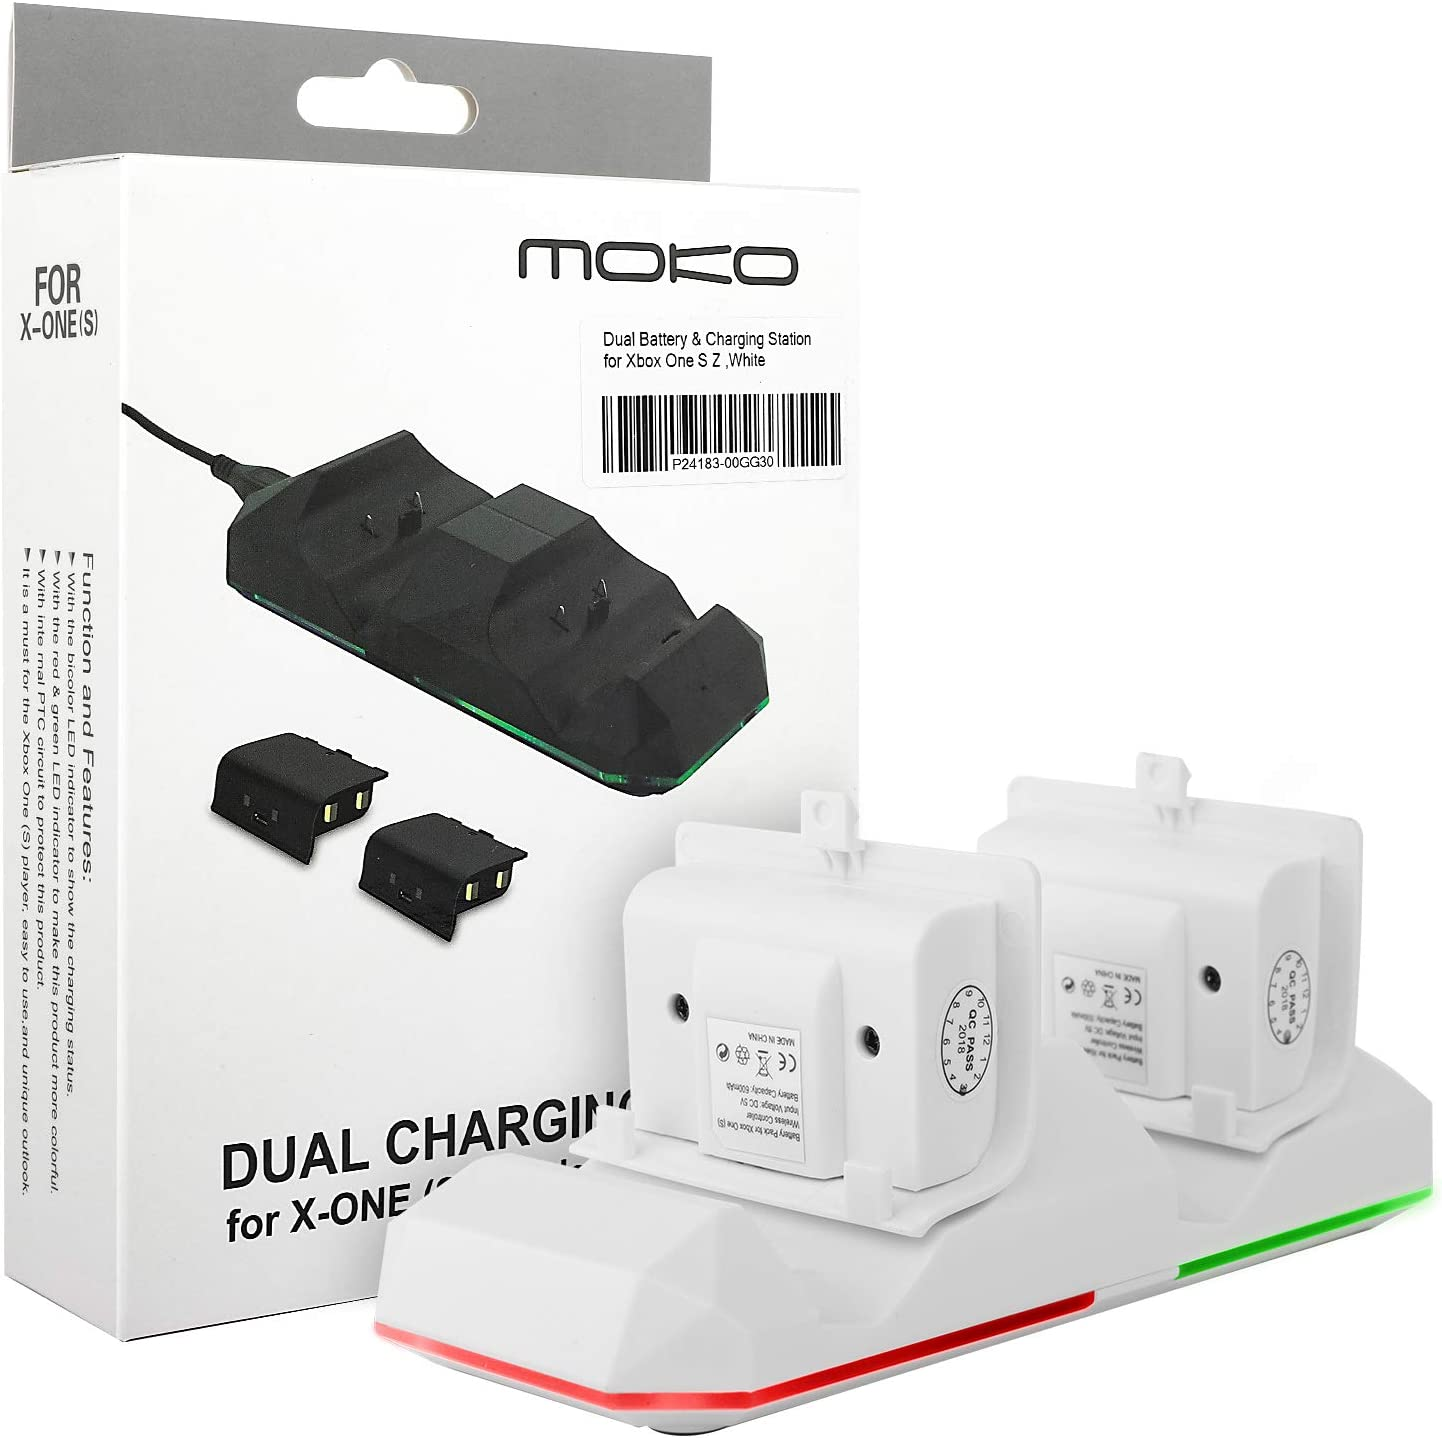 MoKo Xbox One Controller Rechargeable Battery Packs 2 x 600mAh Controller Charging Dock Kit for Xbox One One S One X Xbox One Elite Controllers, White